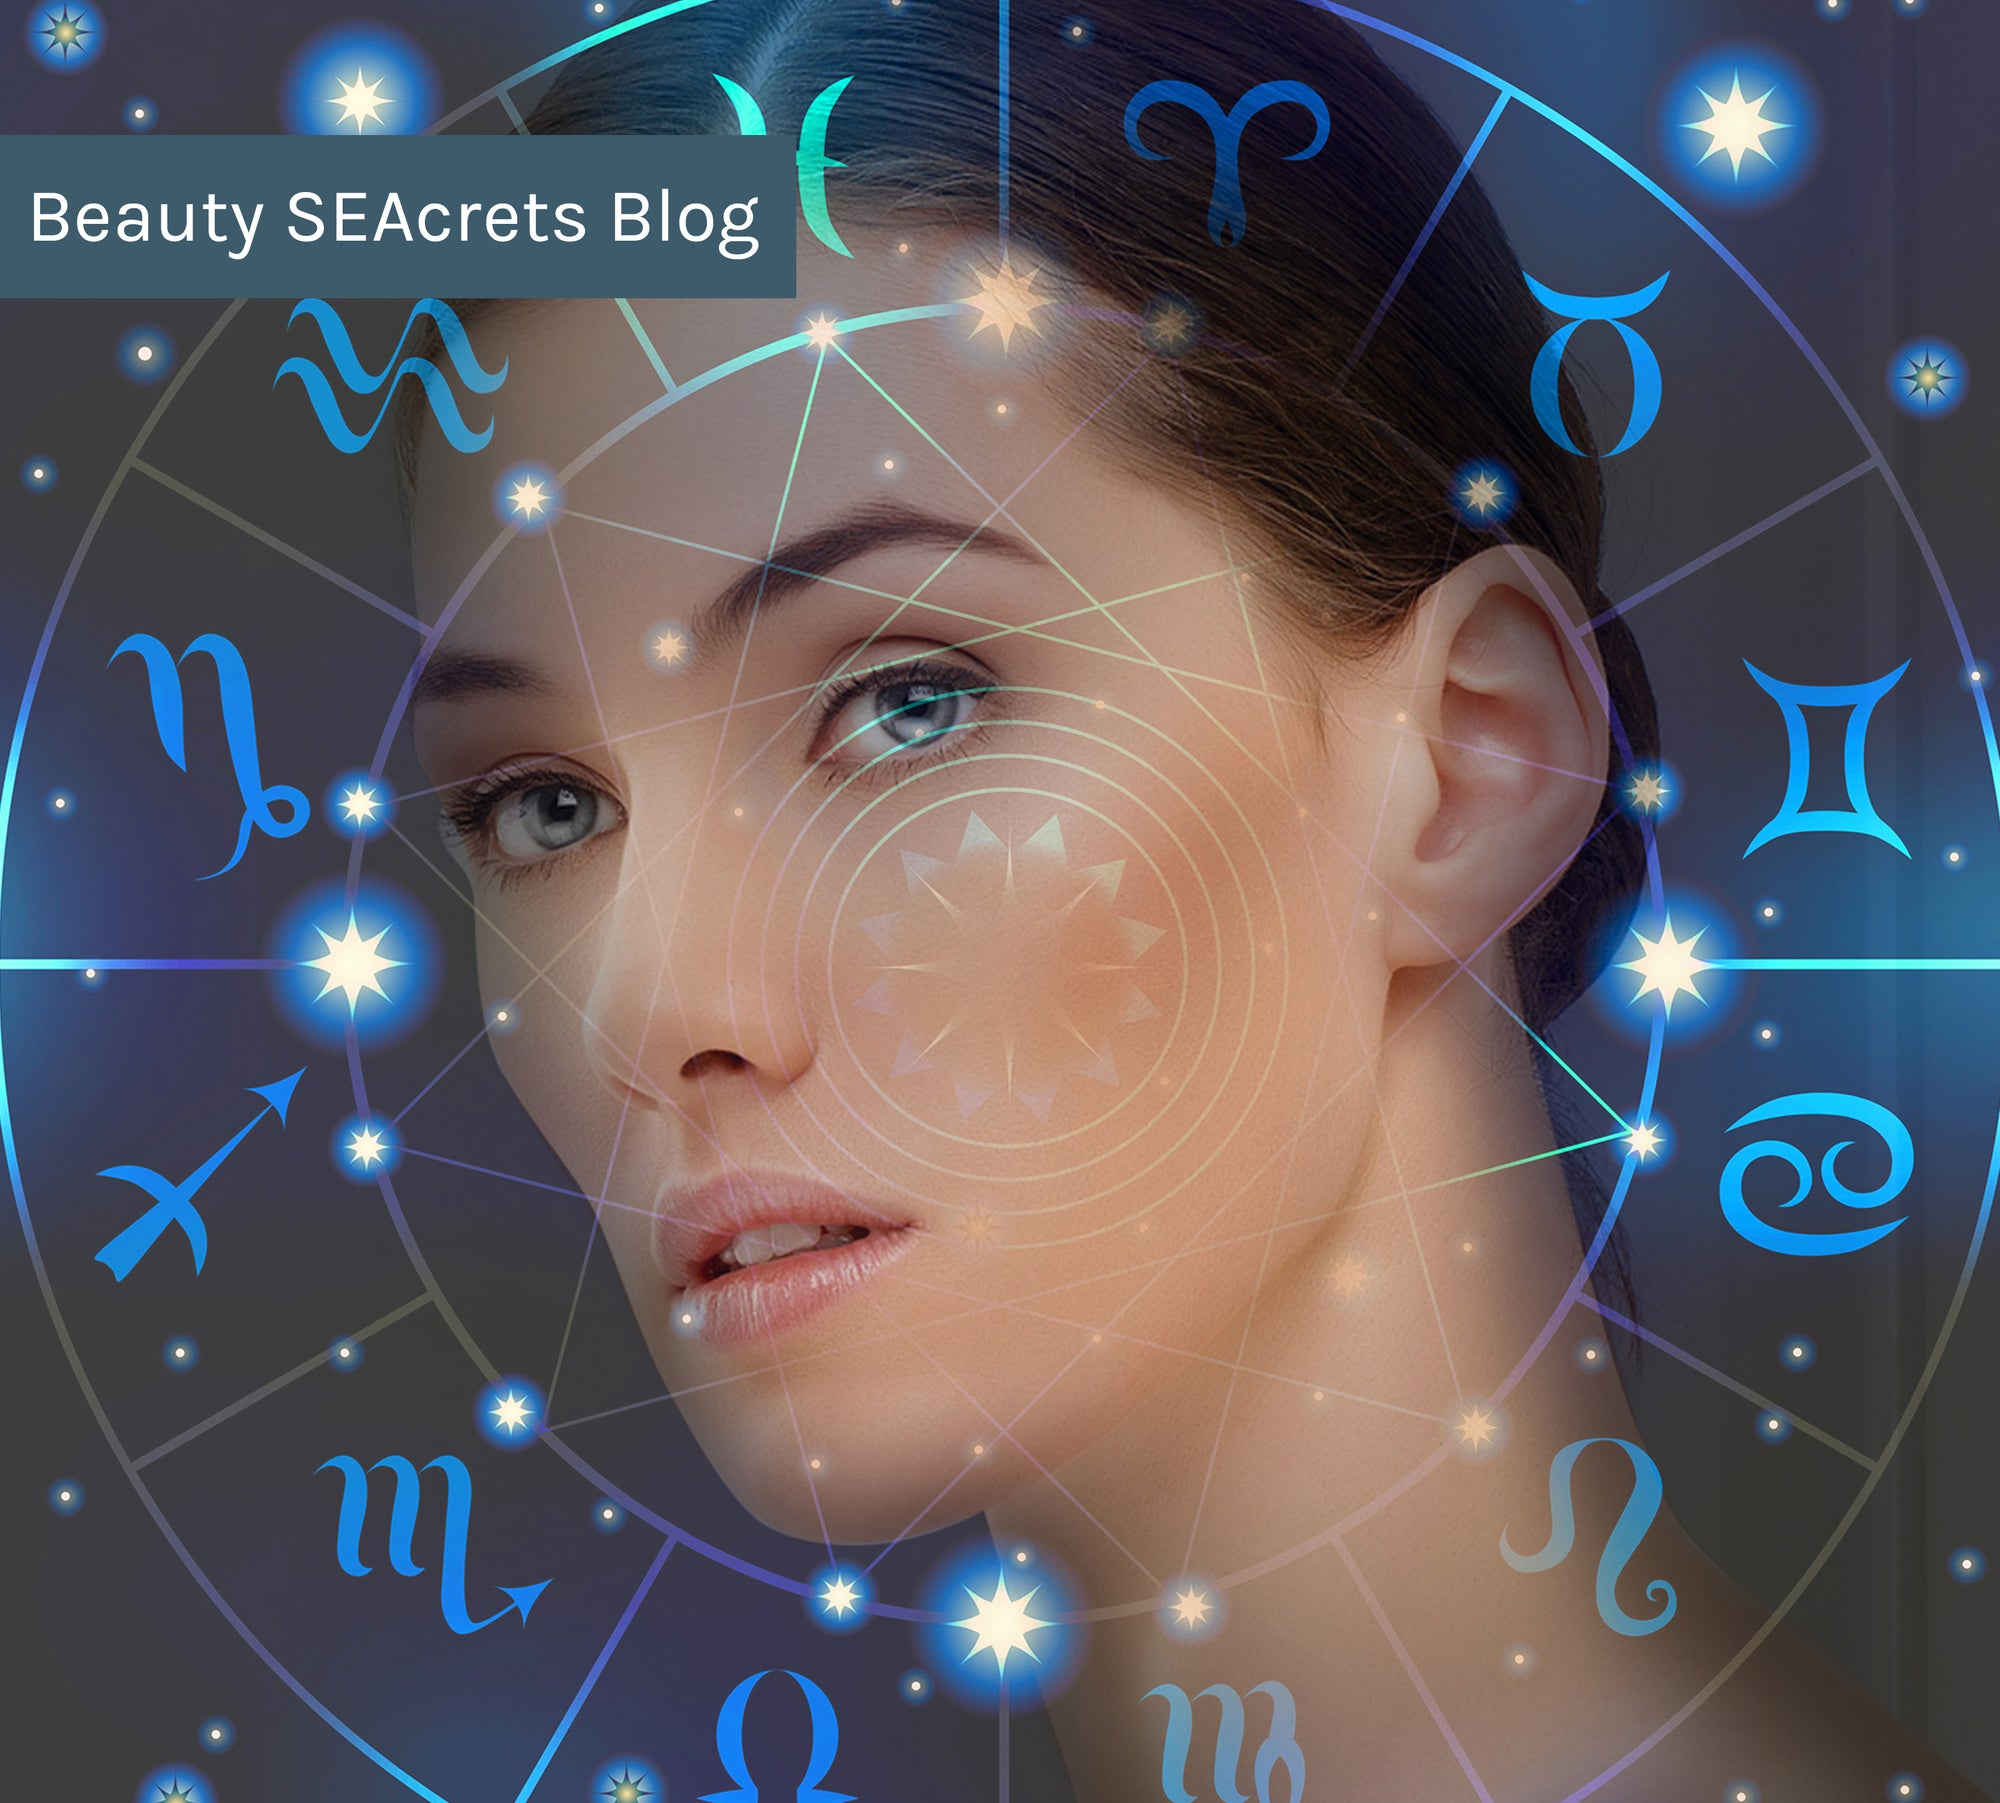 The Best Skin Care Products for Your Zodiac Sign